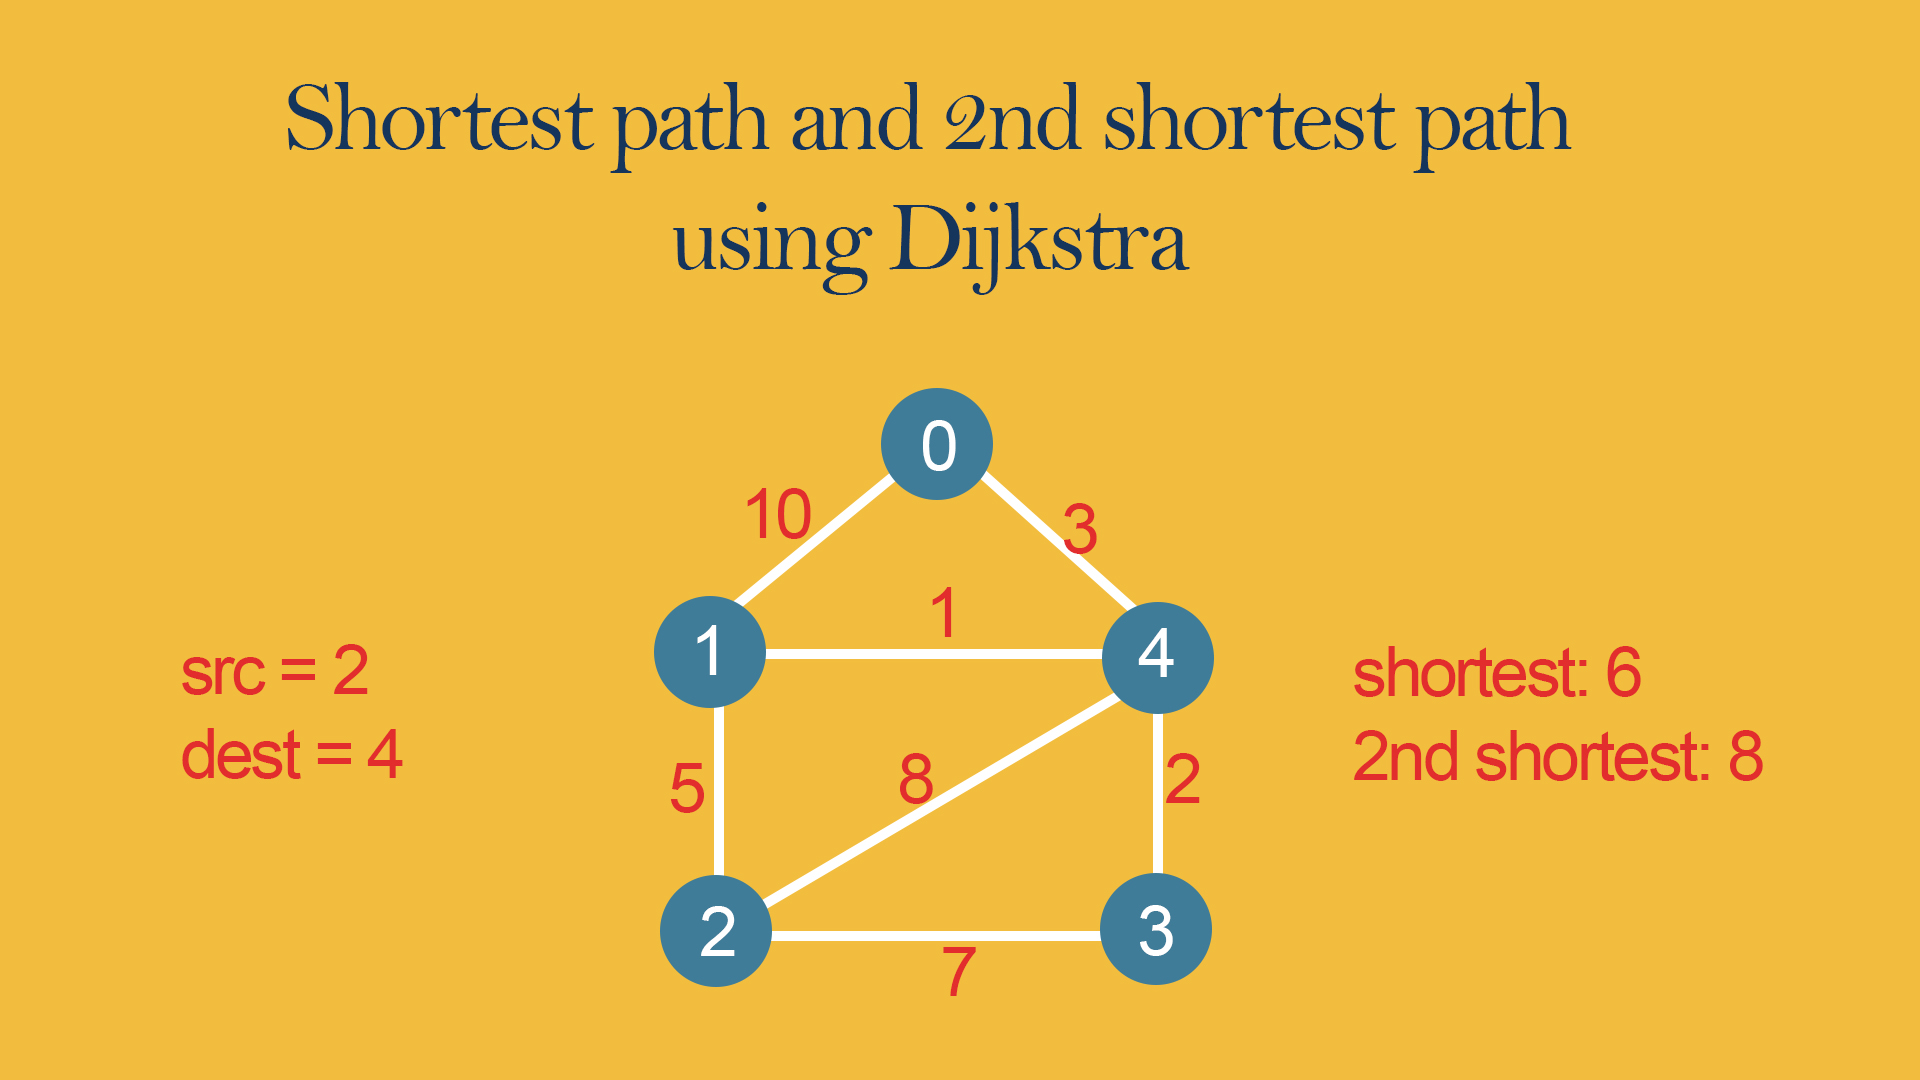 Shortest path and 2nd shortest path using Dijkstra - code